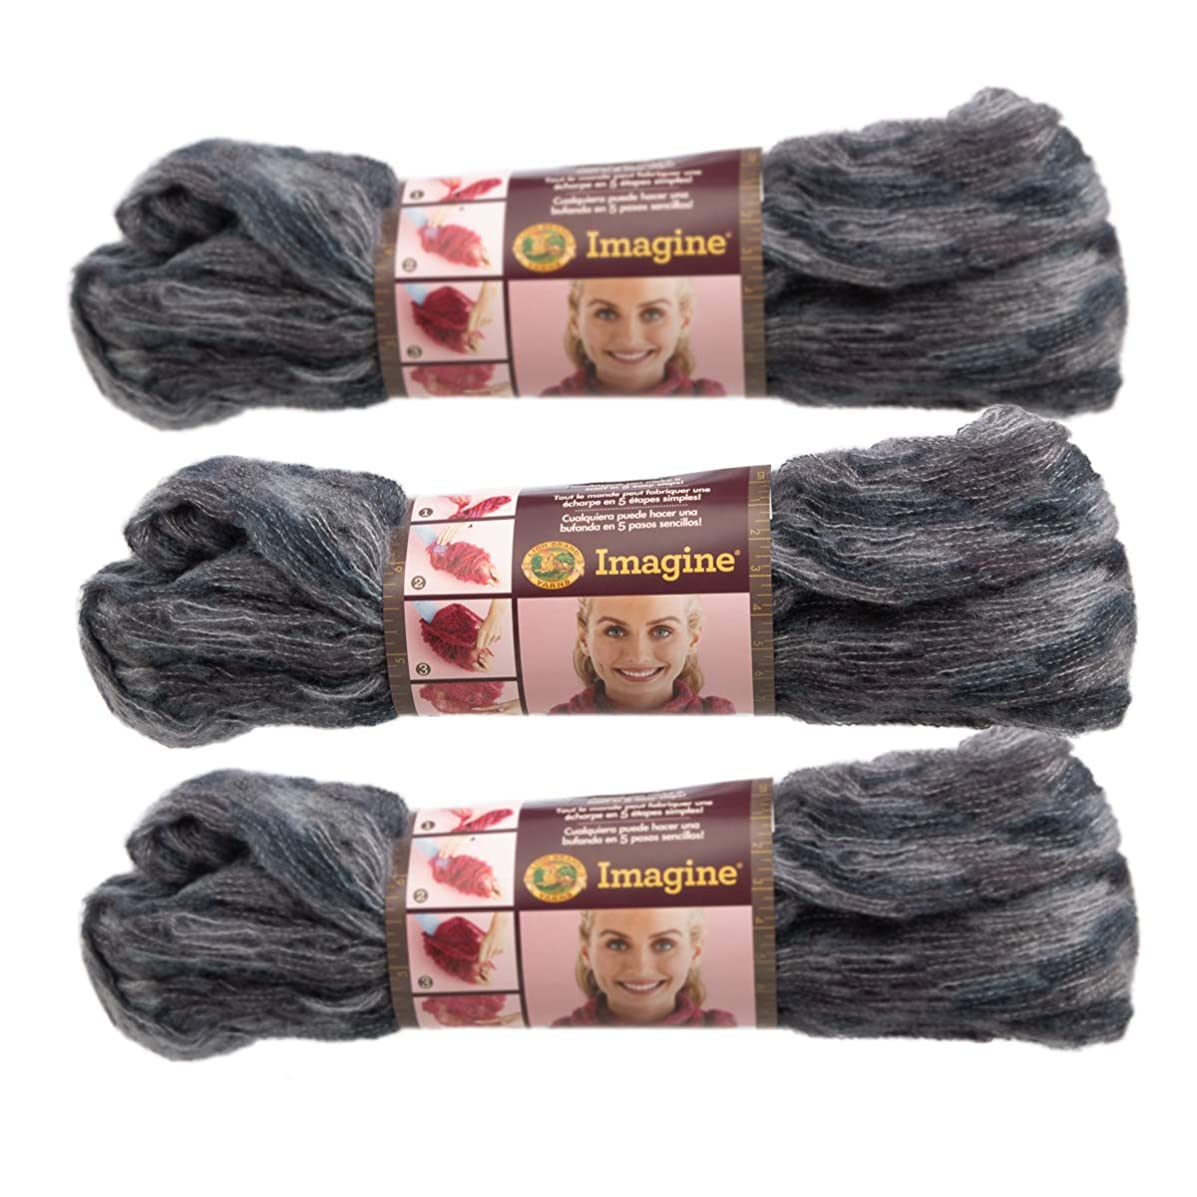 Lion Brand (3 Pack) Imagine Acrylic Blend Soft Black Ice Yarn for Knitting Crocheting Super Bulky #6